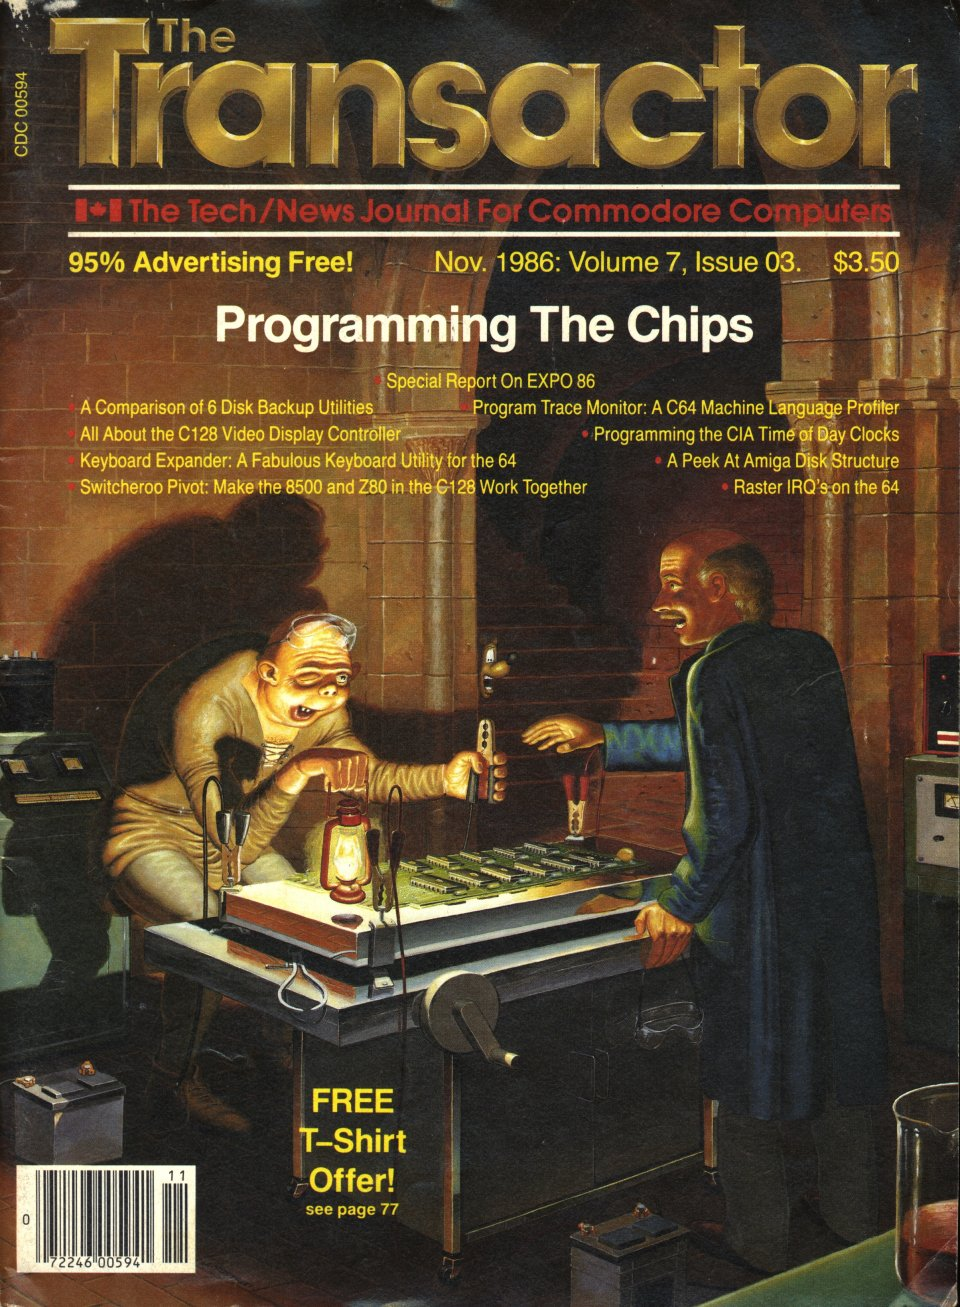 [Cover Page of The Transactor Volume 7, Issue 3: Programming The Chips]